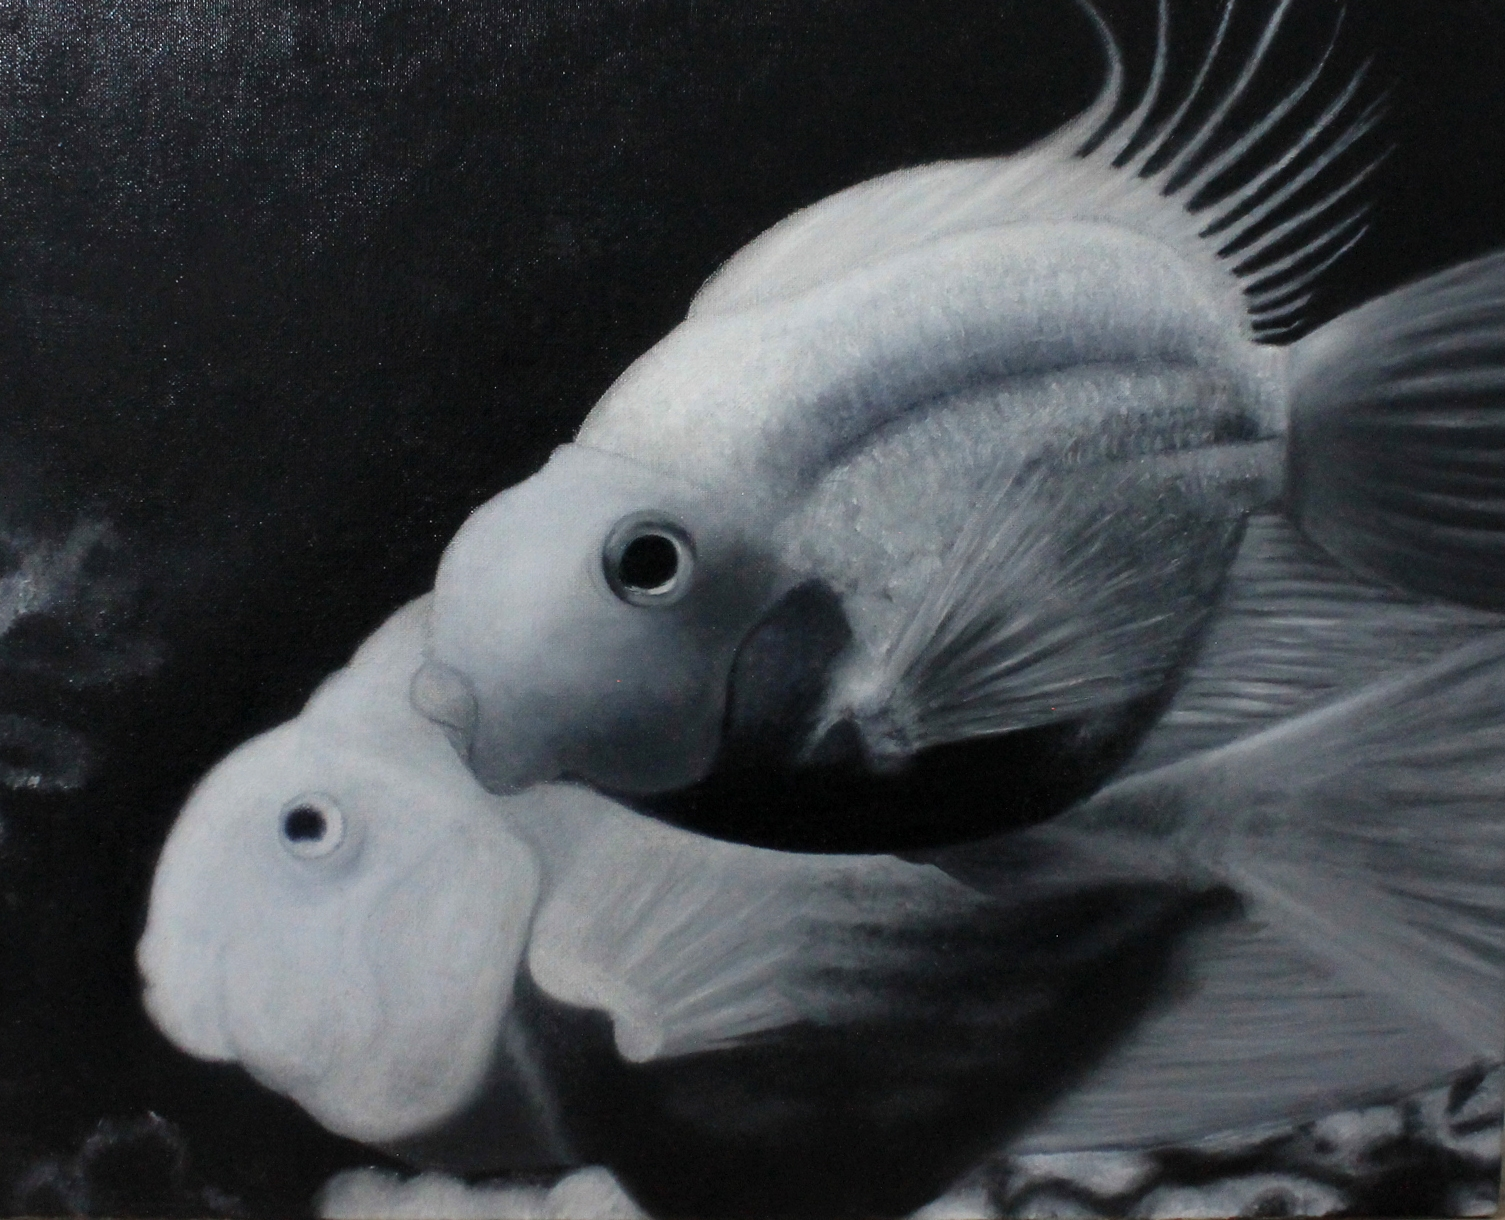 Black and white fish.